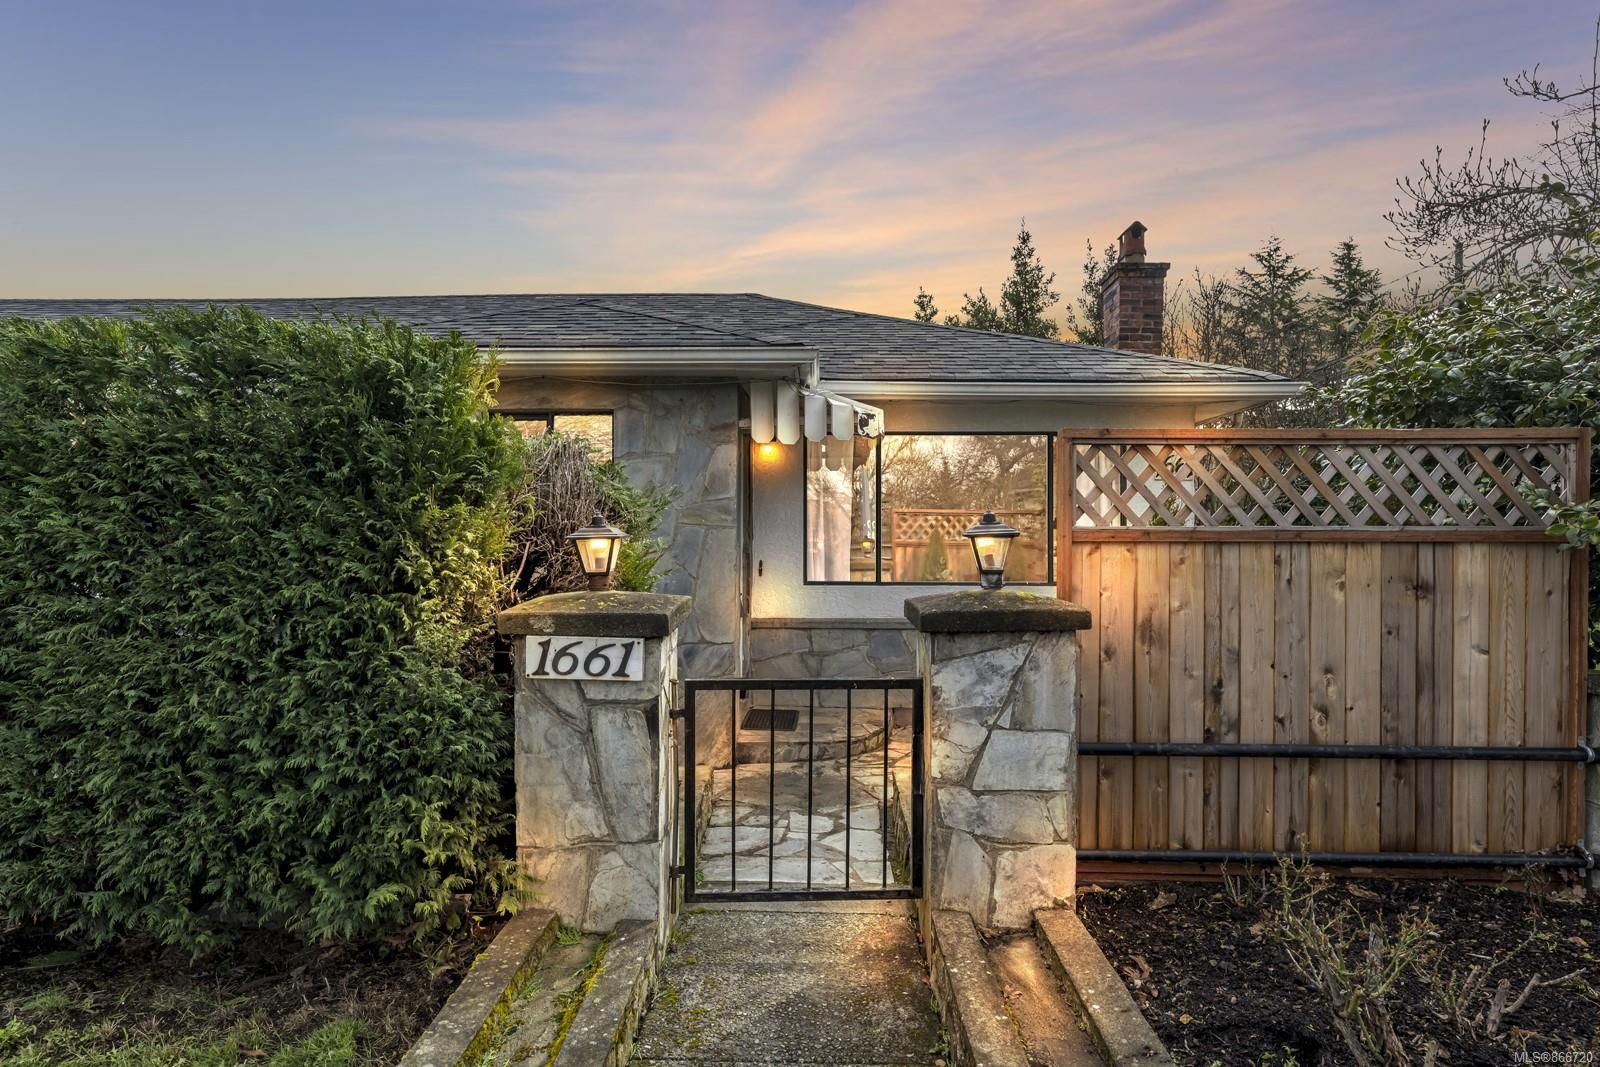 Main Photo: 1661 Begbie St in : Vi Fernwood House for sale (Victoria)  : MLS®# 866720